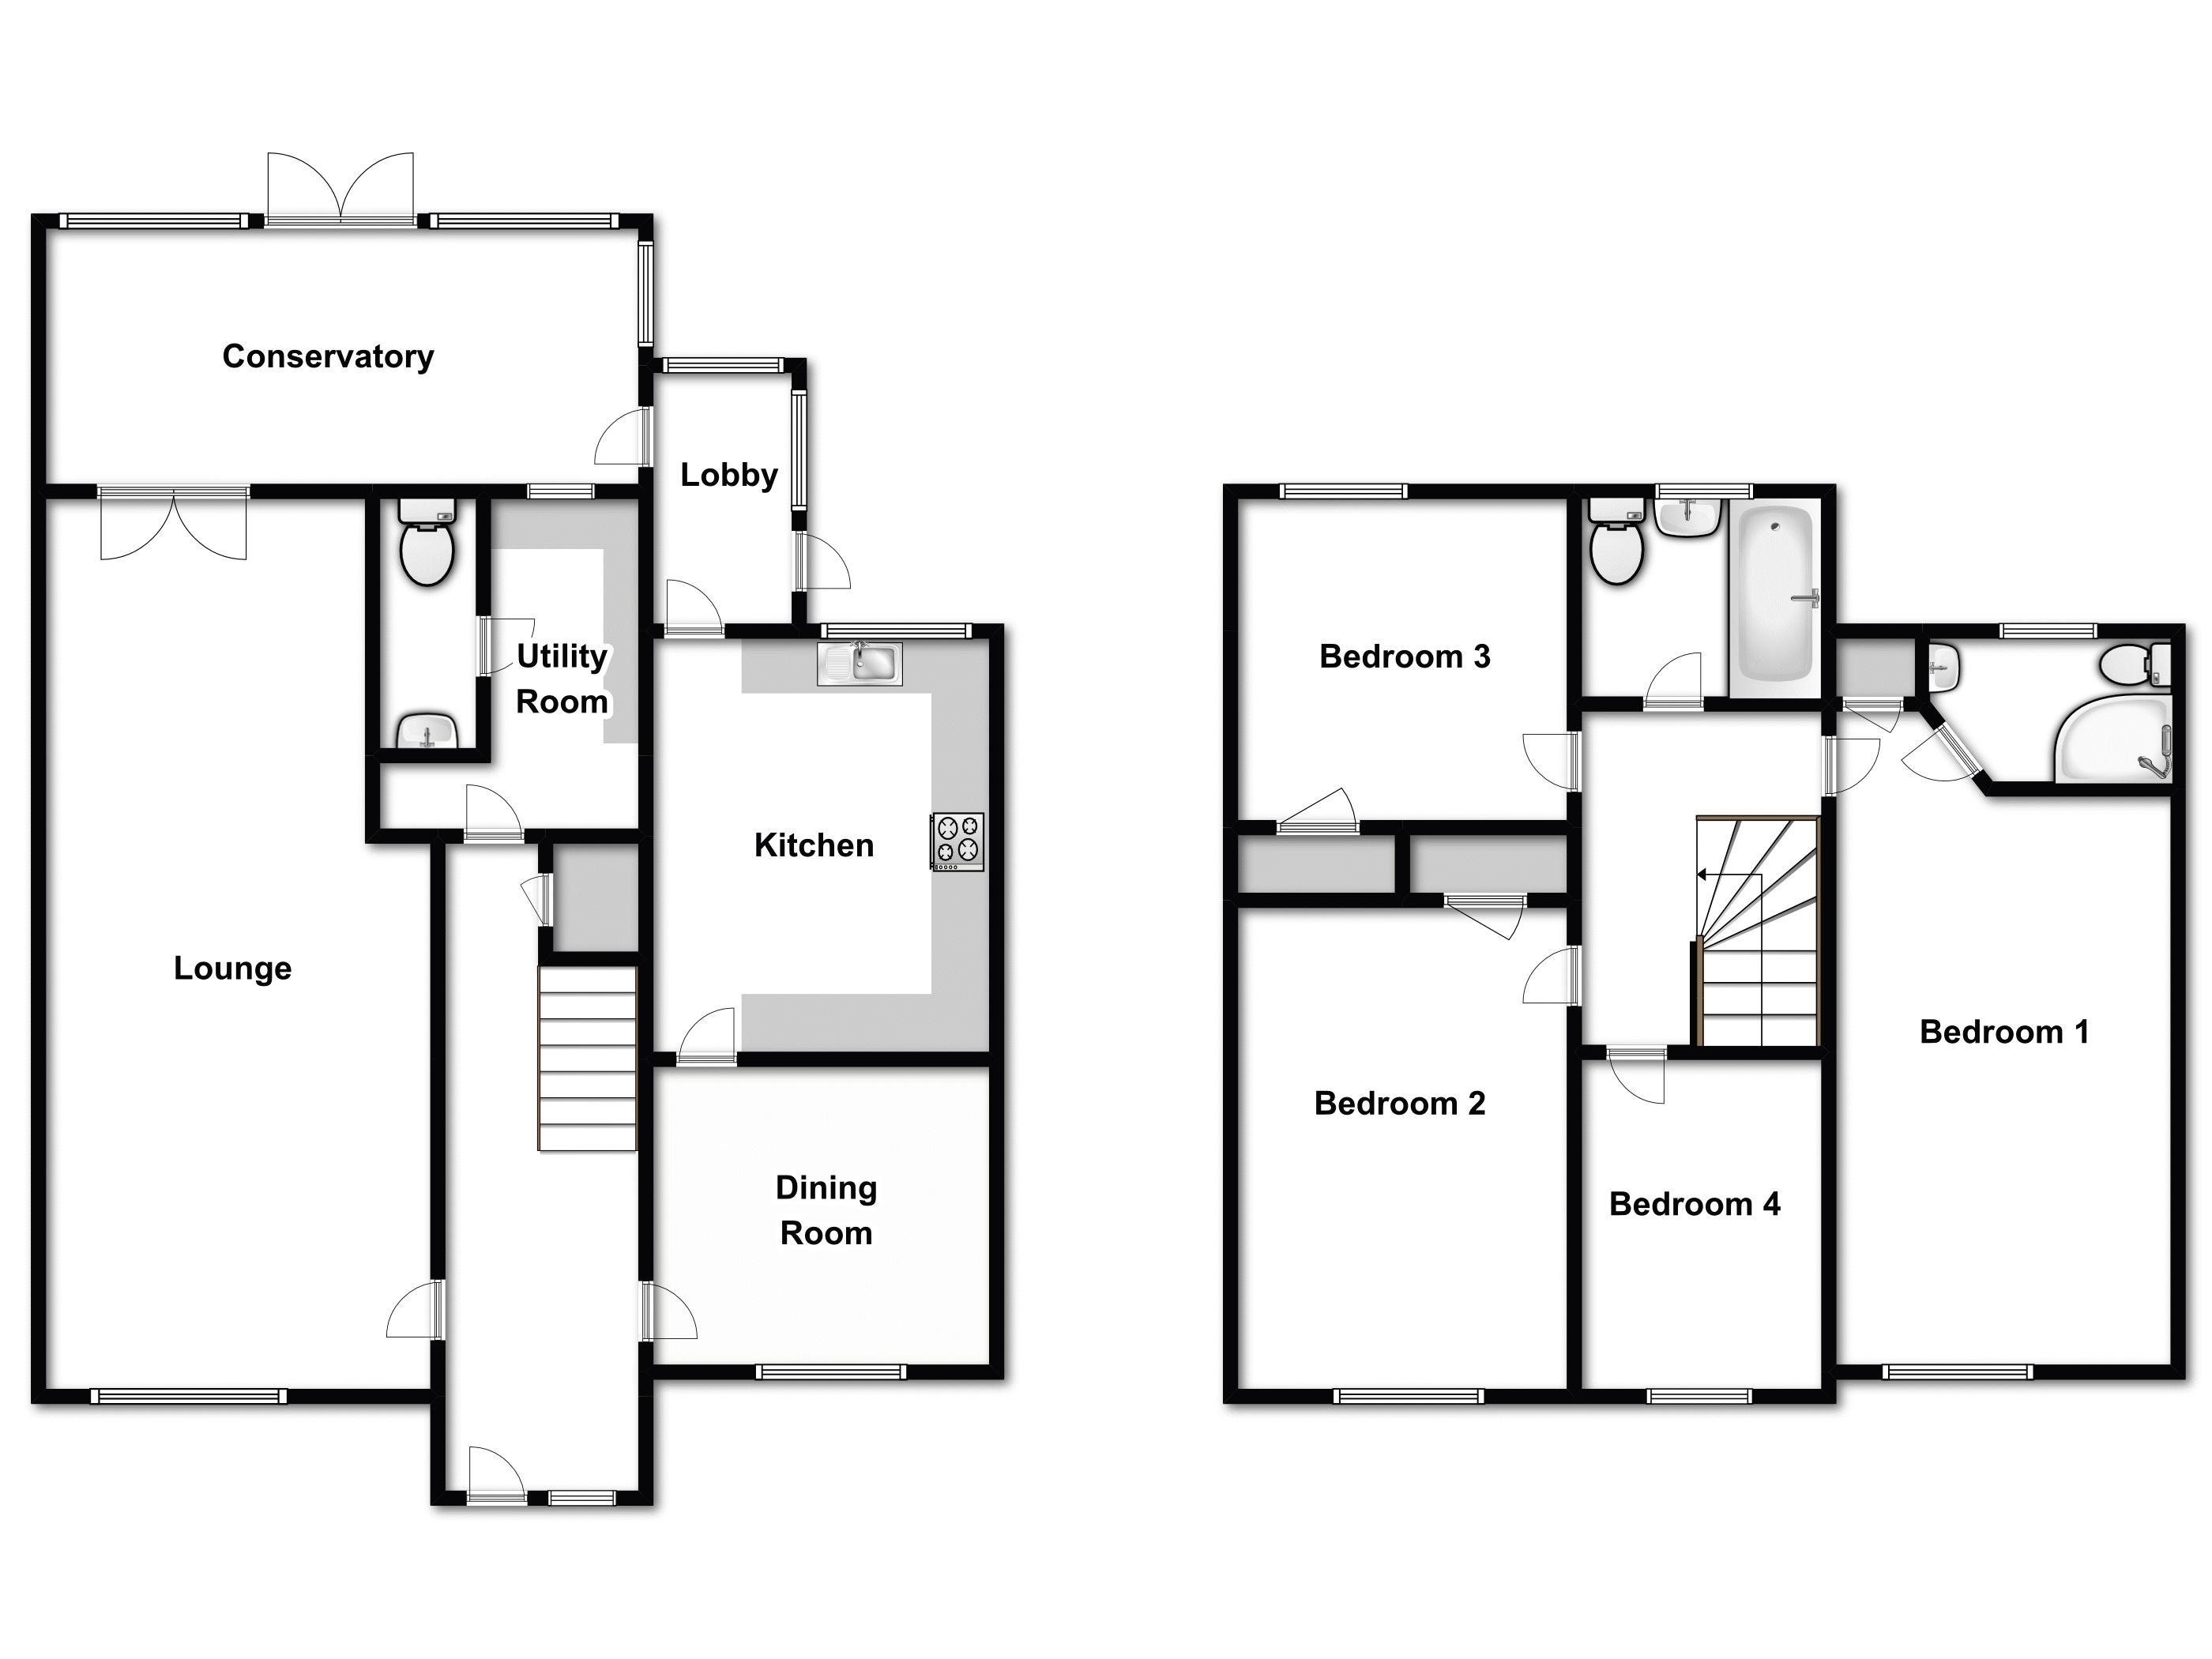 Churchwell Avenue, Easthorpe, Colchester floor plan